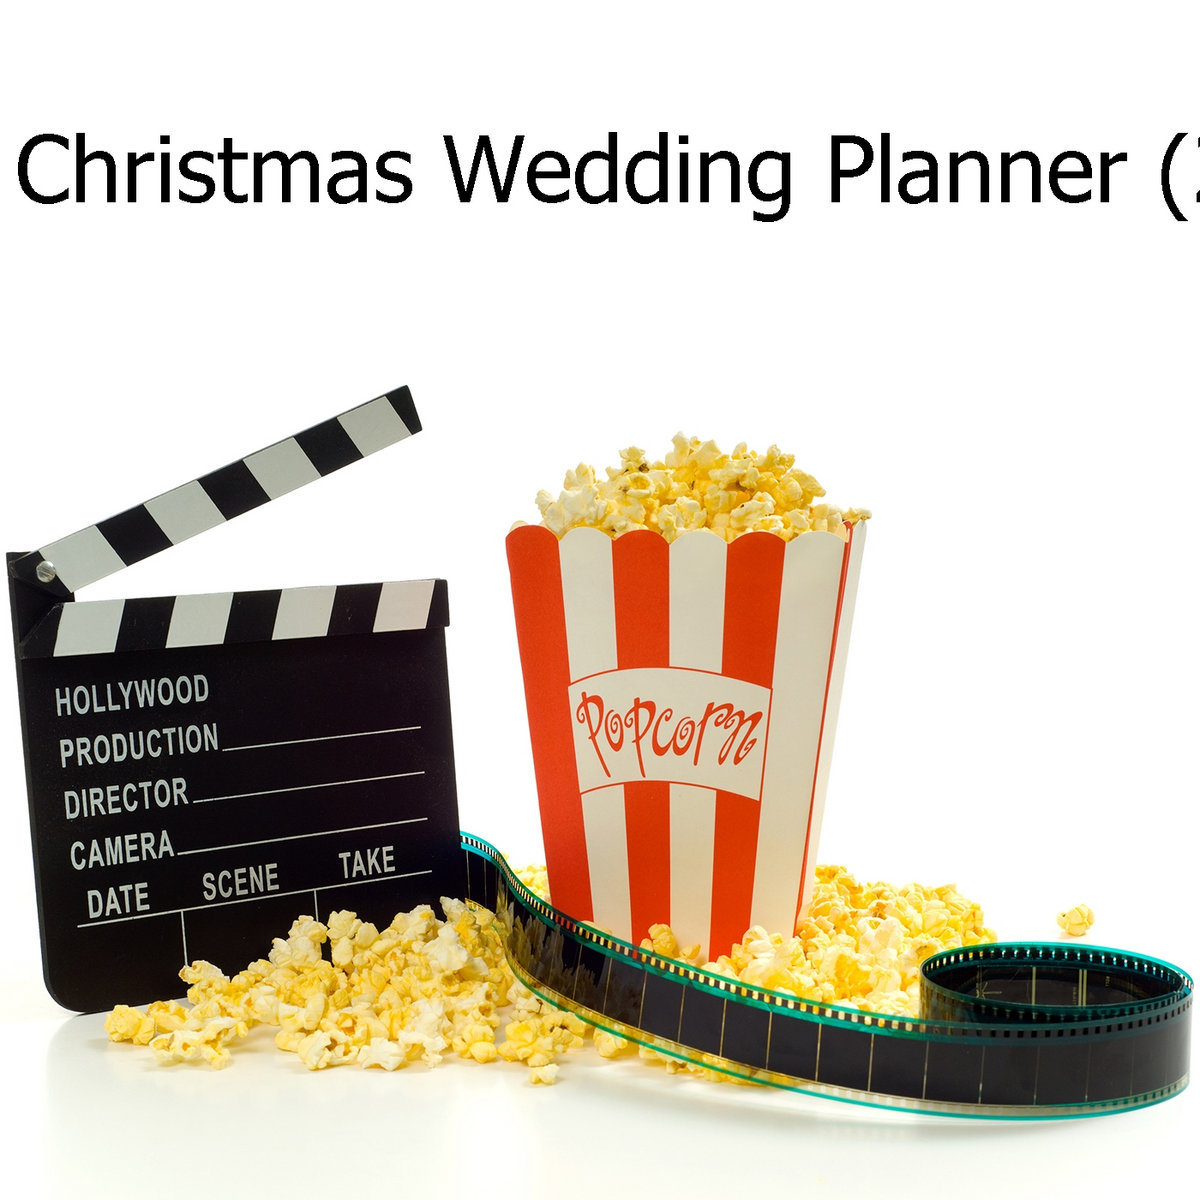 Christmas Wedding Planner Online 1080p Totalrosamhra